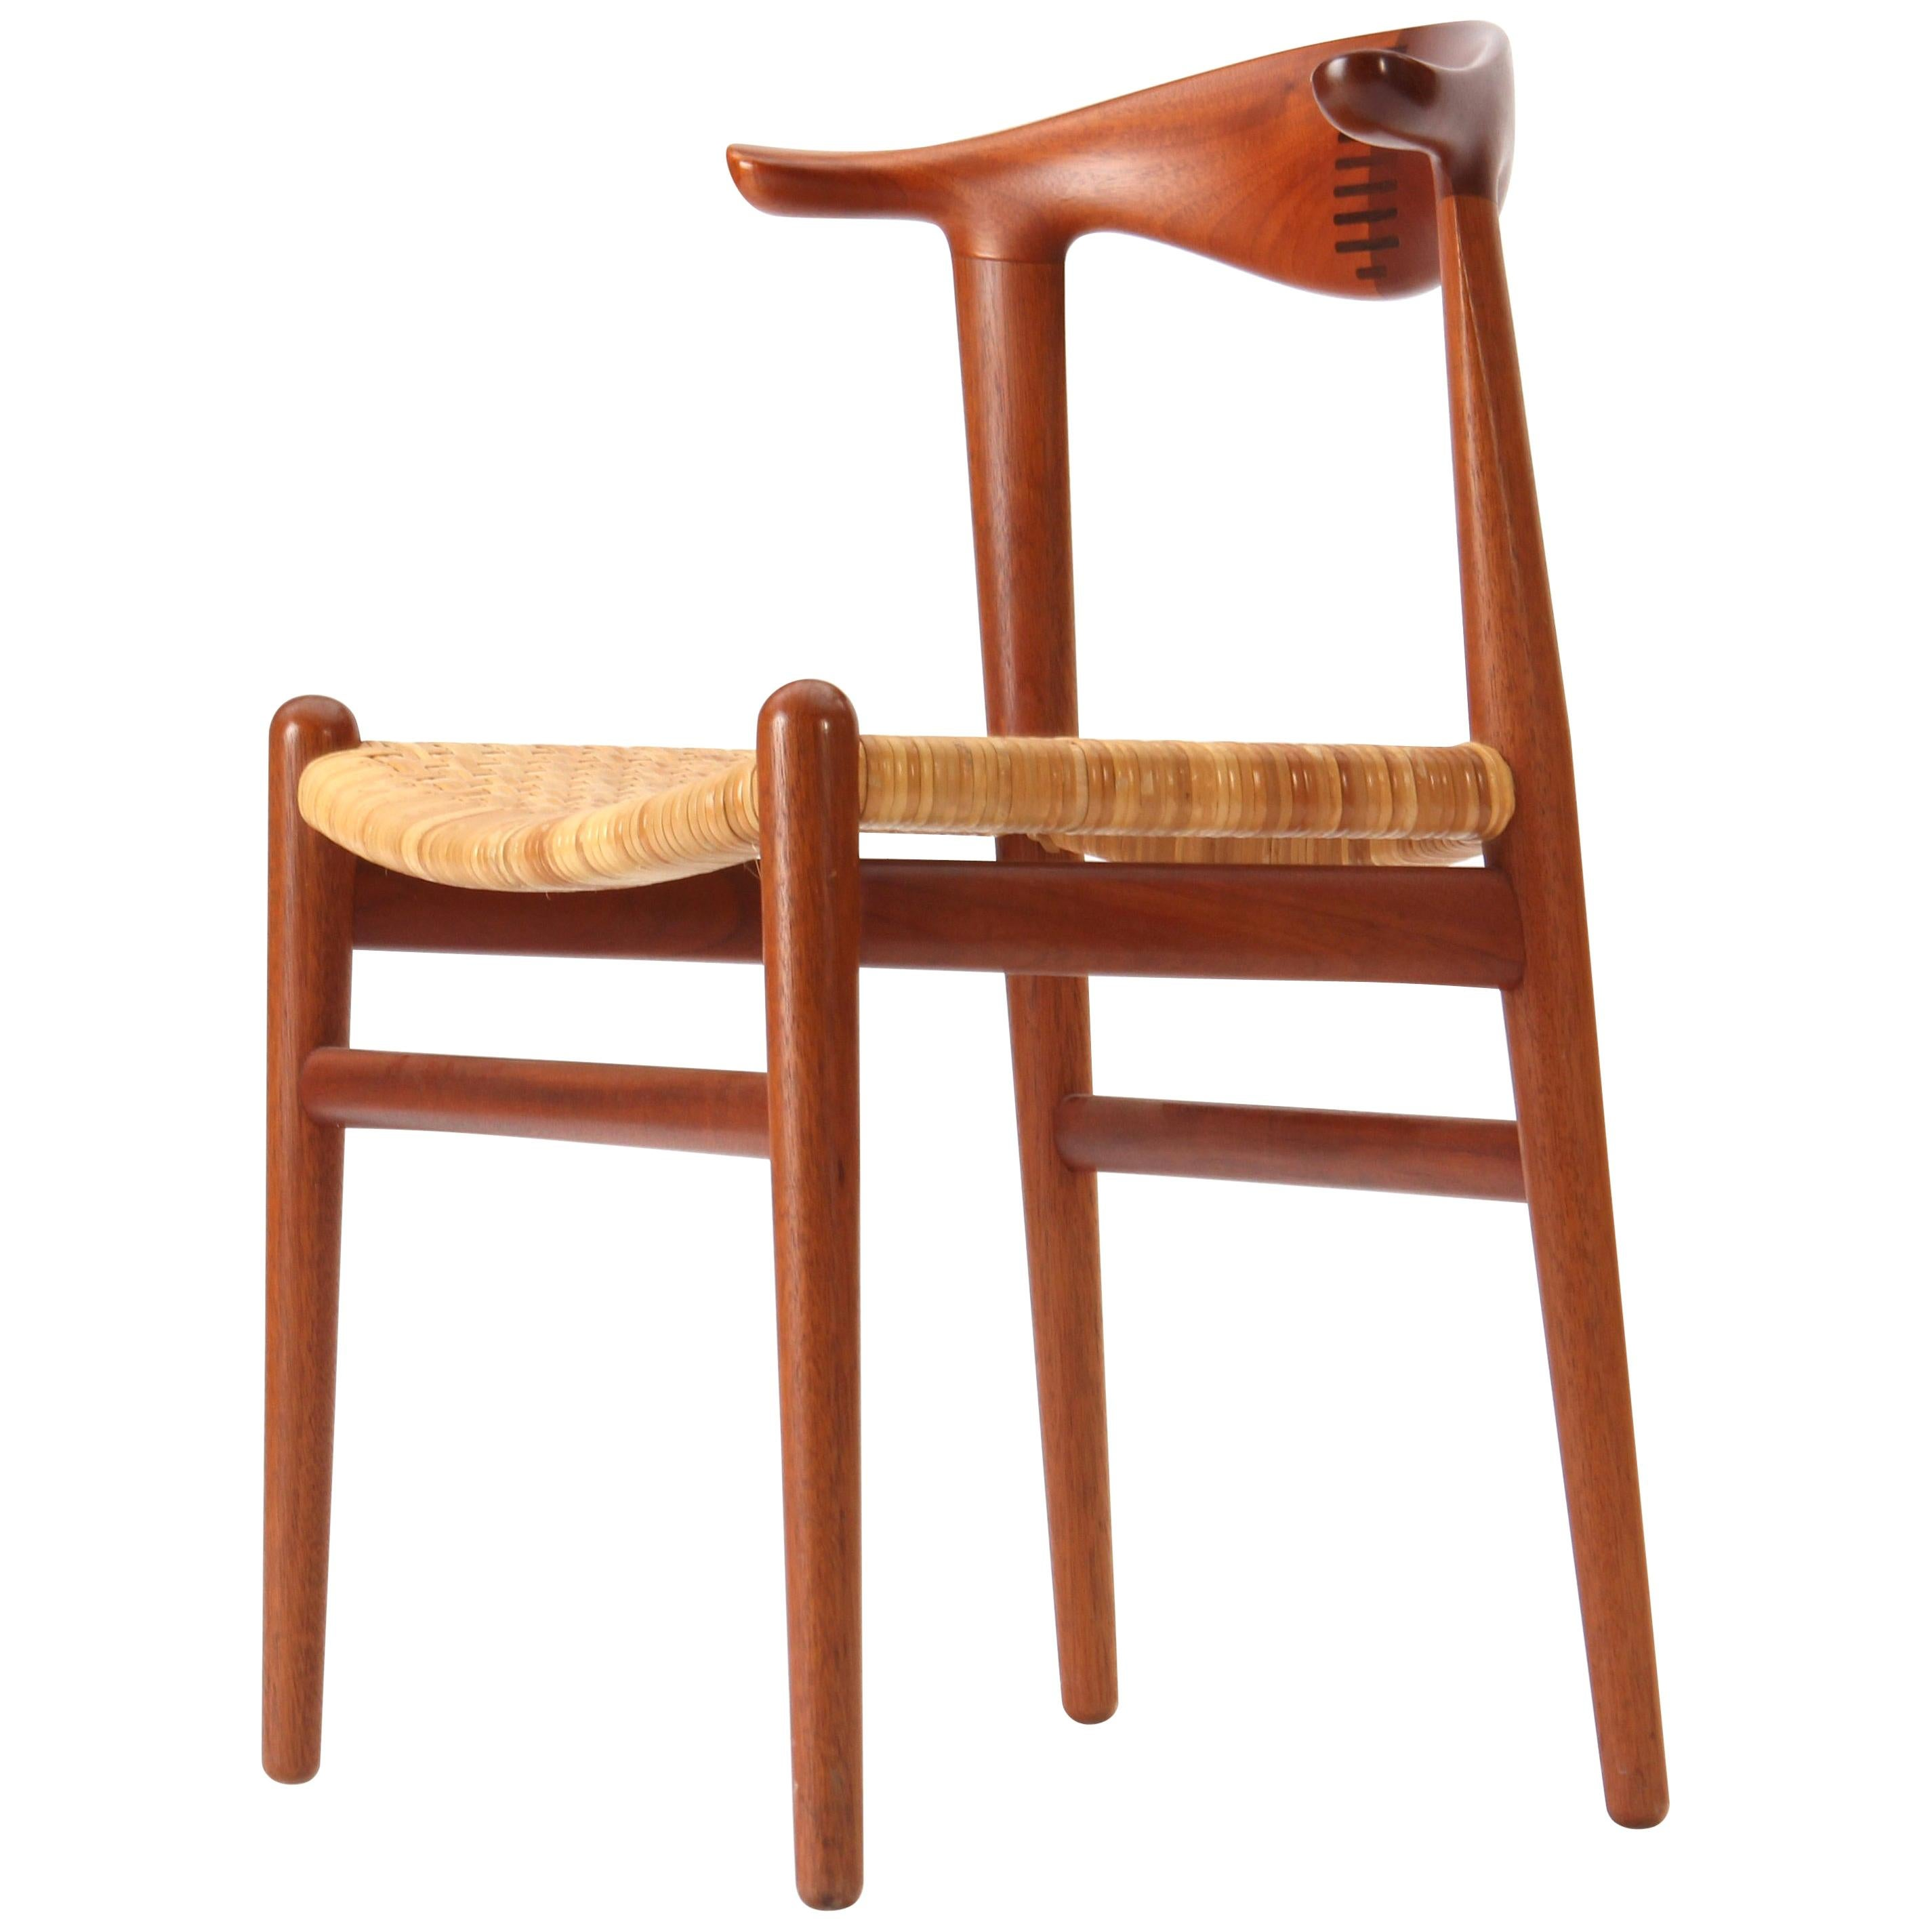 1960s JH-505 Teak Cow Horn Chair by Hans J. Wegner for Johannes Hansen